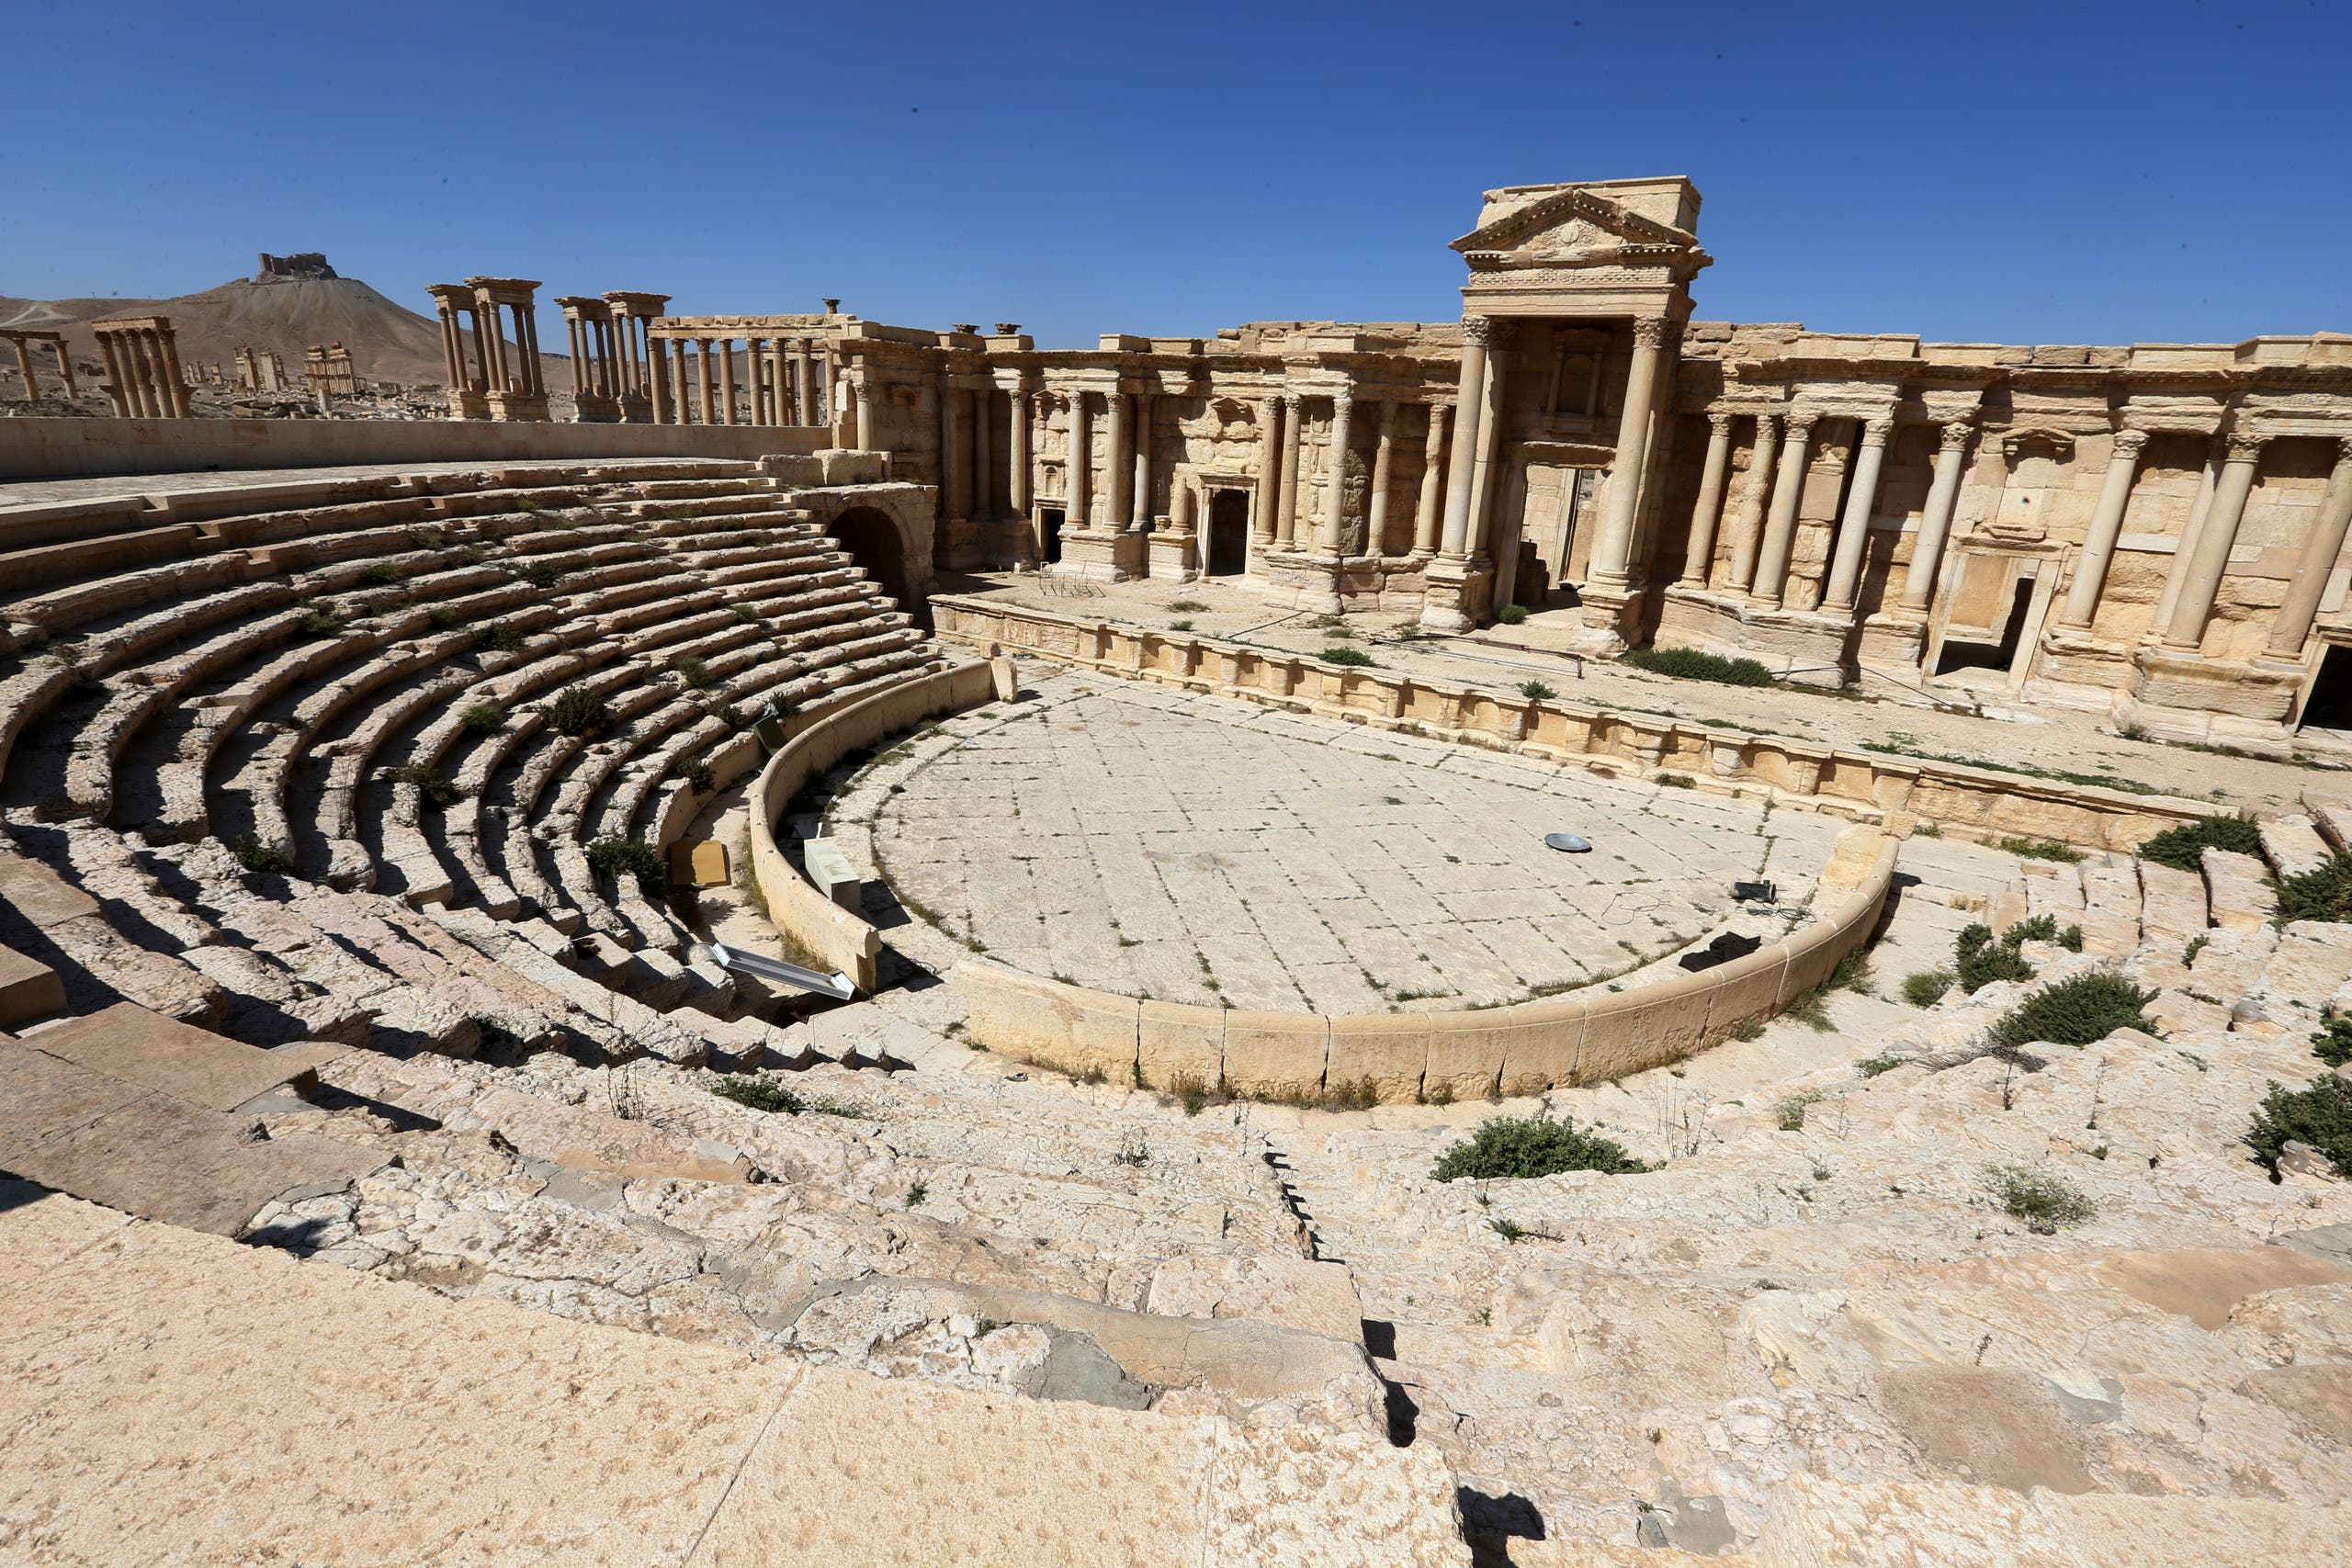 This file photo taken on March 31, 2016 shows the Roman Theatre in the ancient city of Palmyra in central Syria. (AFP)